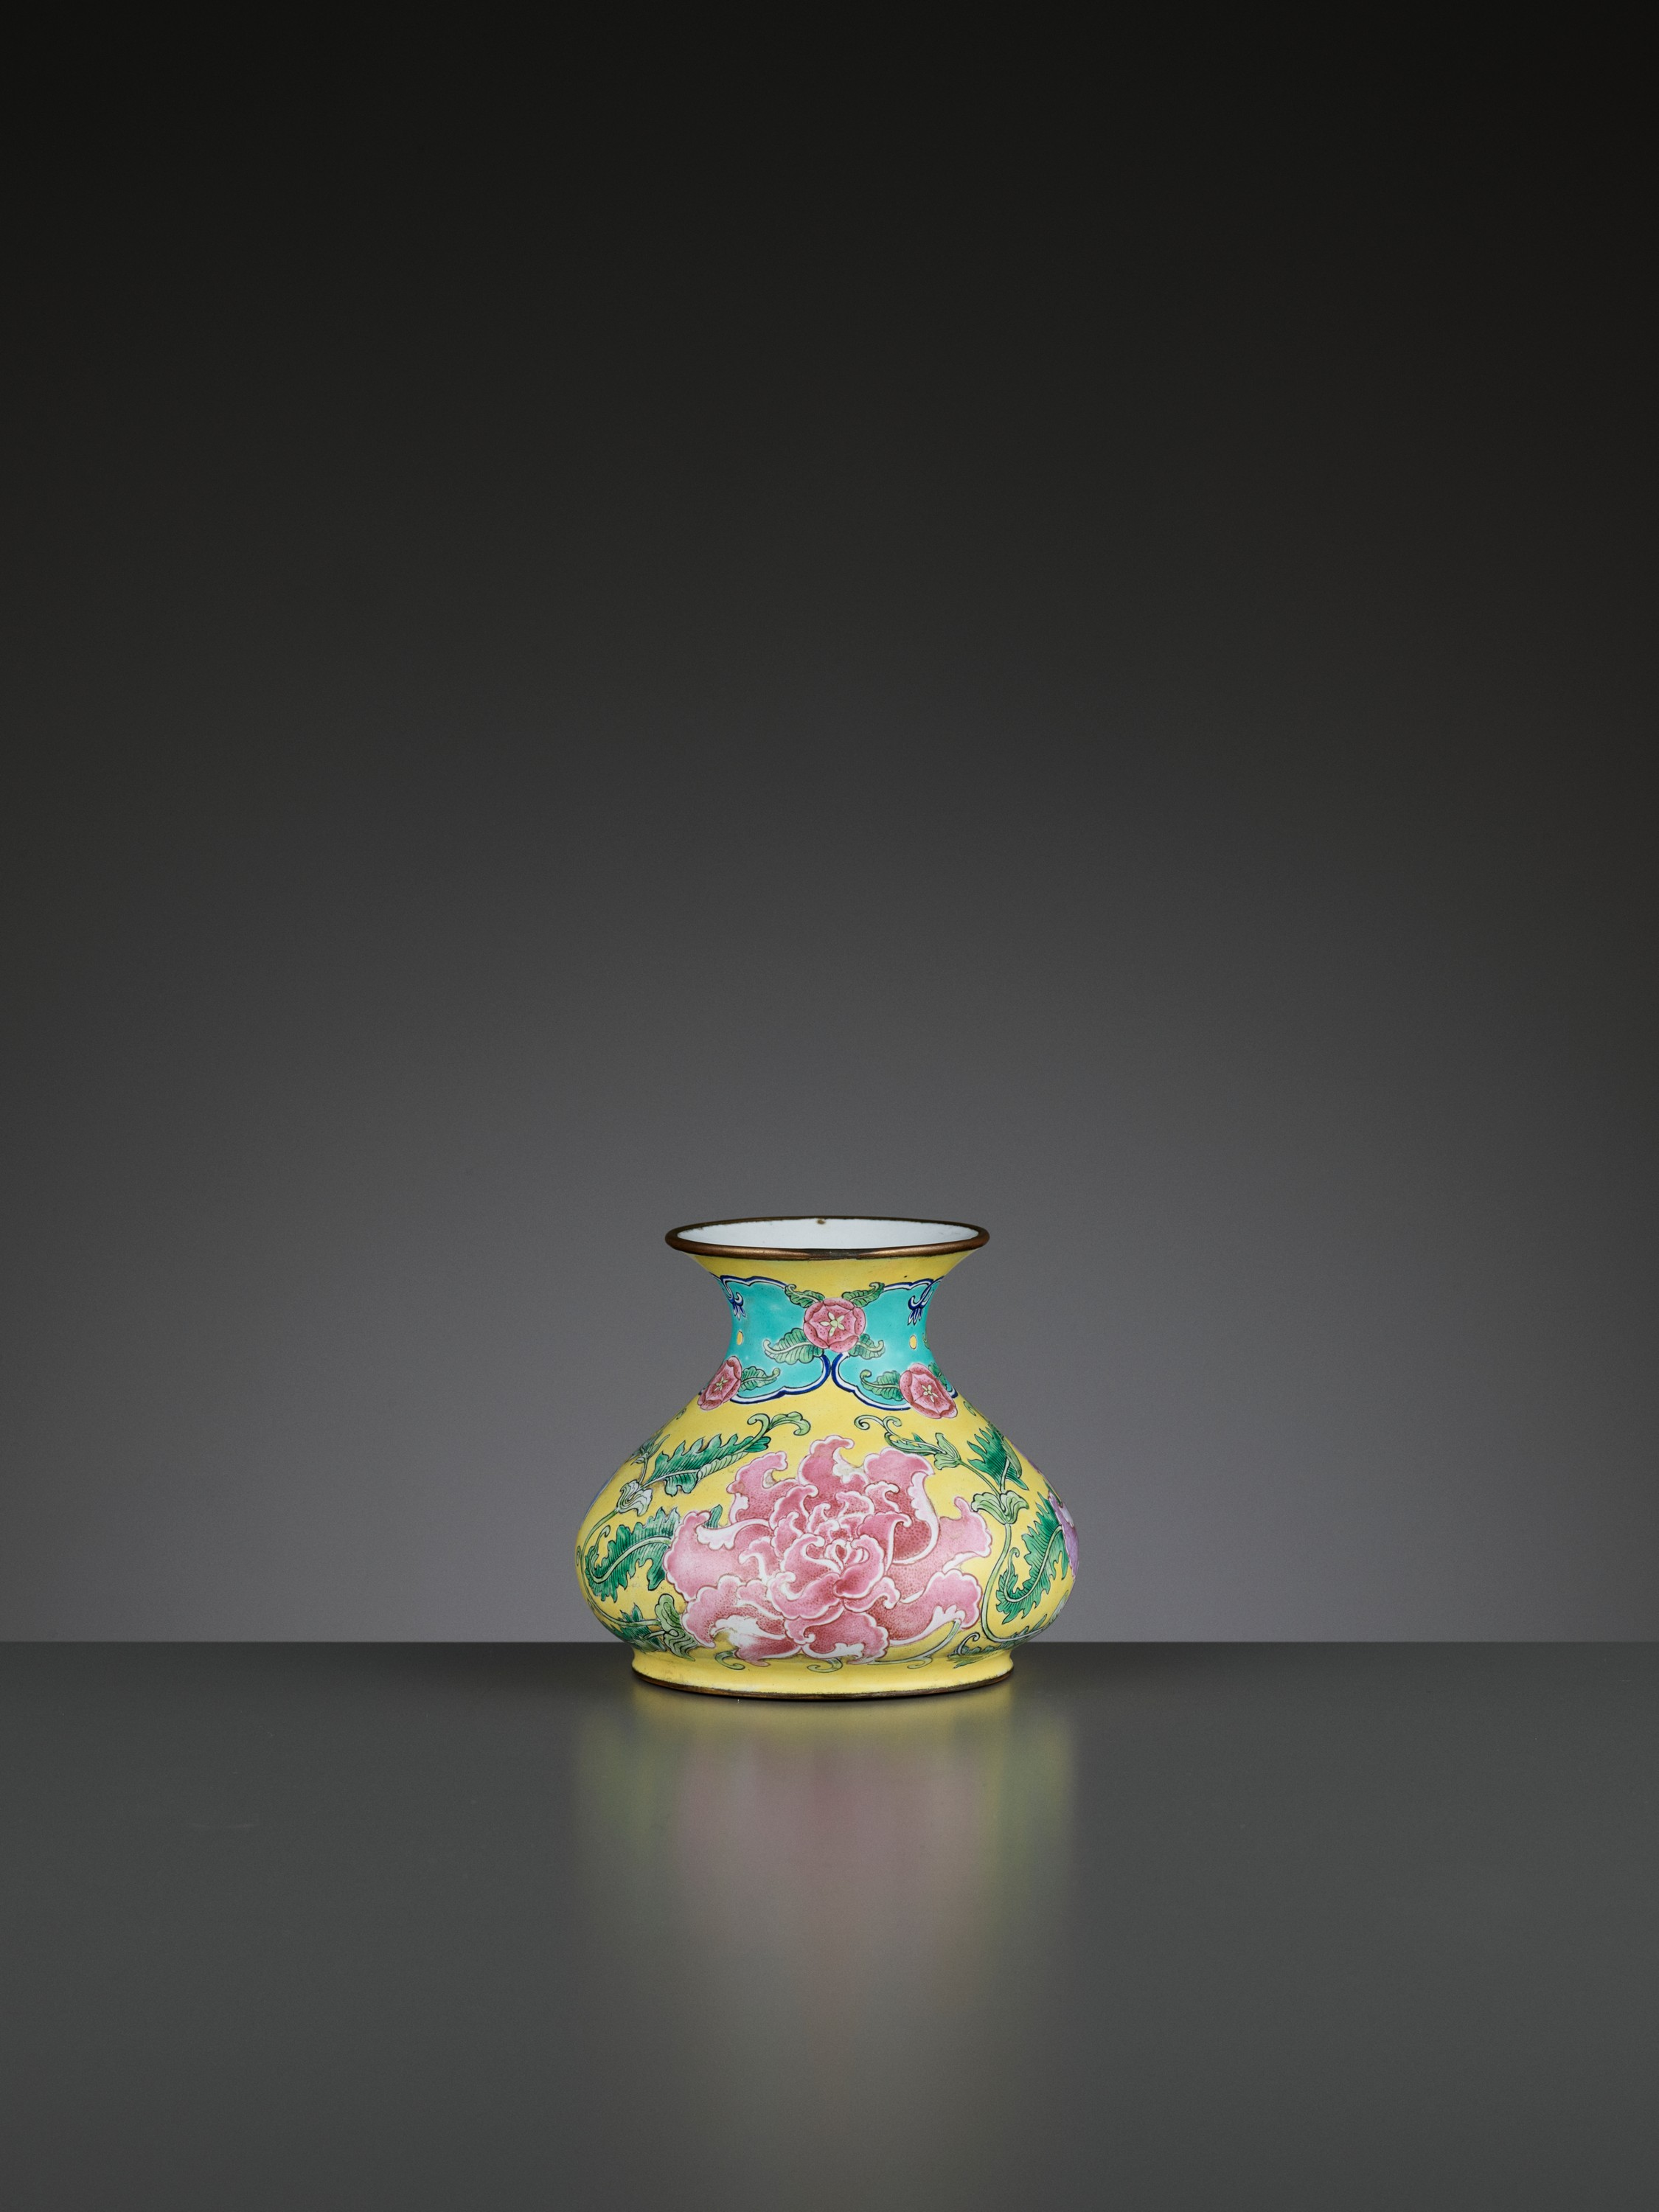 A BEIJING ENAMEL ON COPPER 'PEONIES' WATER POT, QIANLONG MARK AND PERIOD - Image 8 of 11